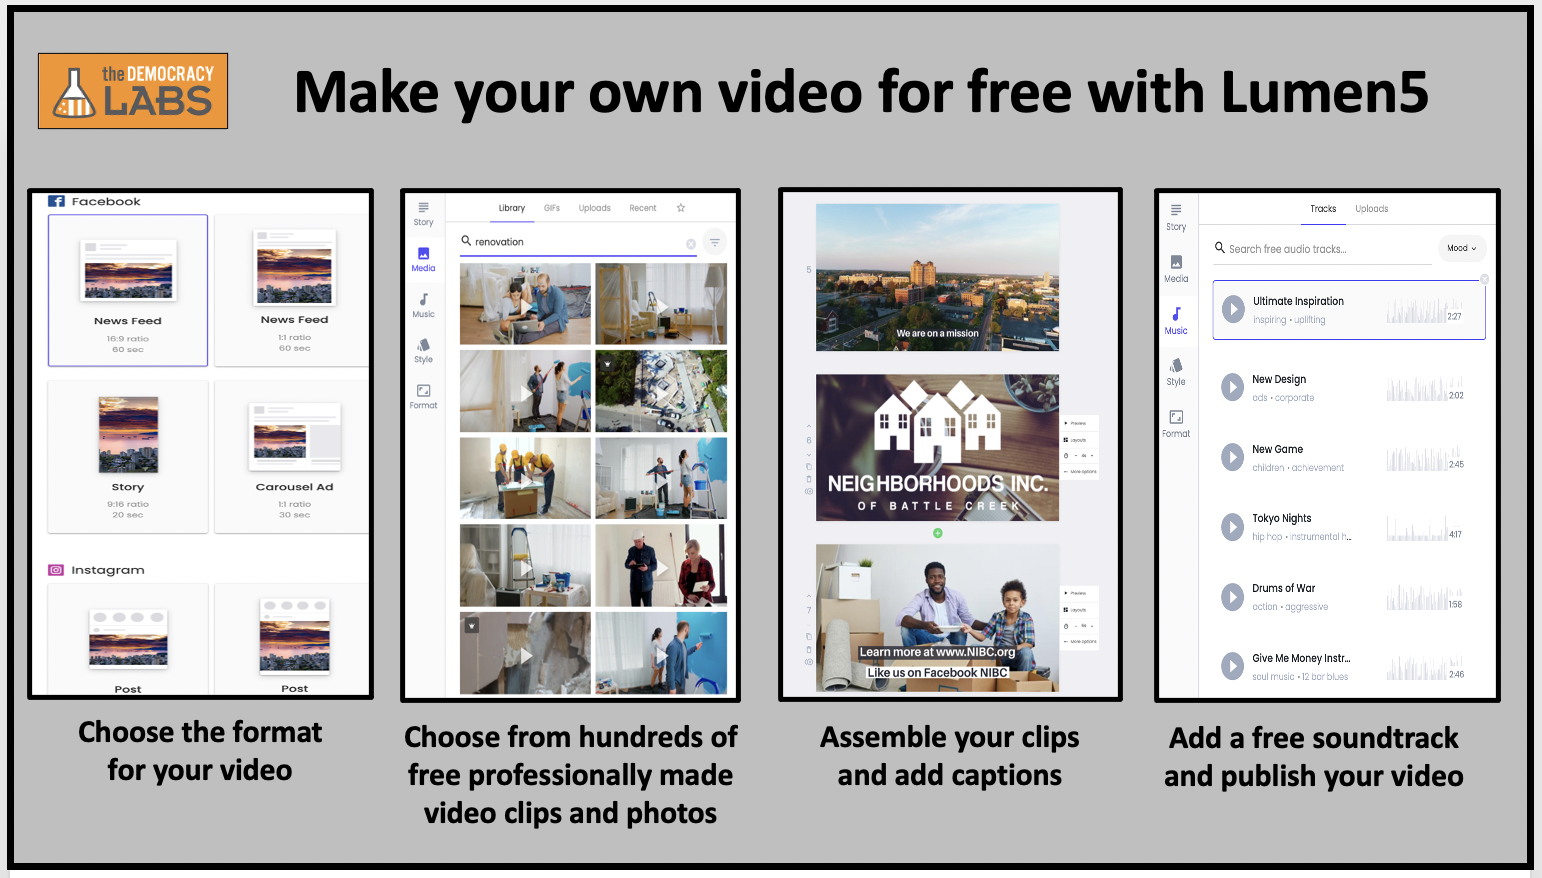 Create your own fundraising video in hours, for free with Lumen5